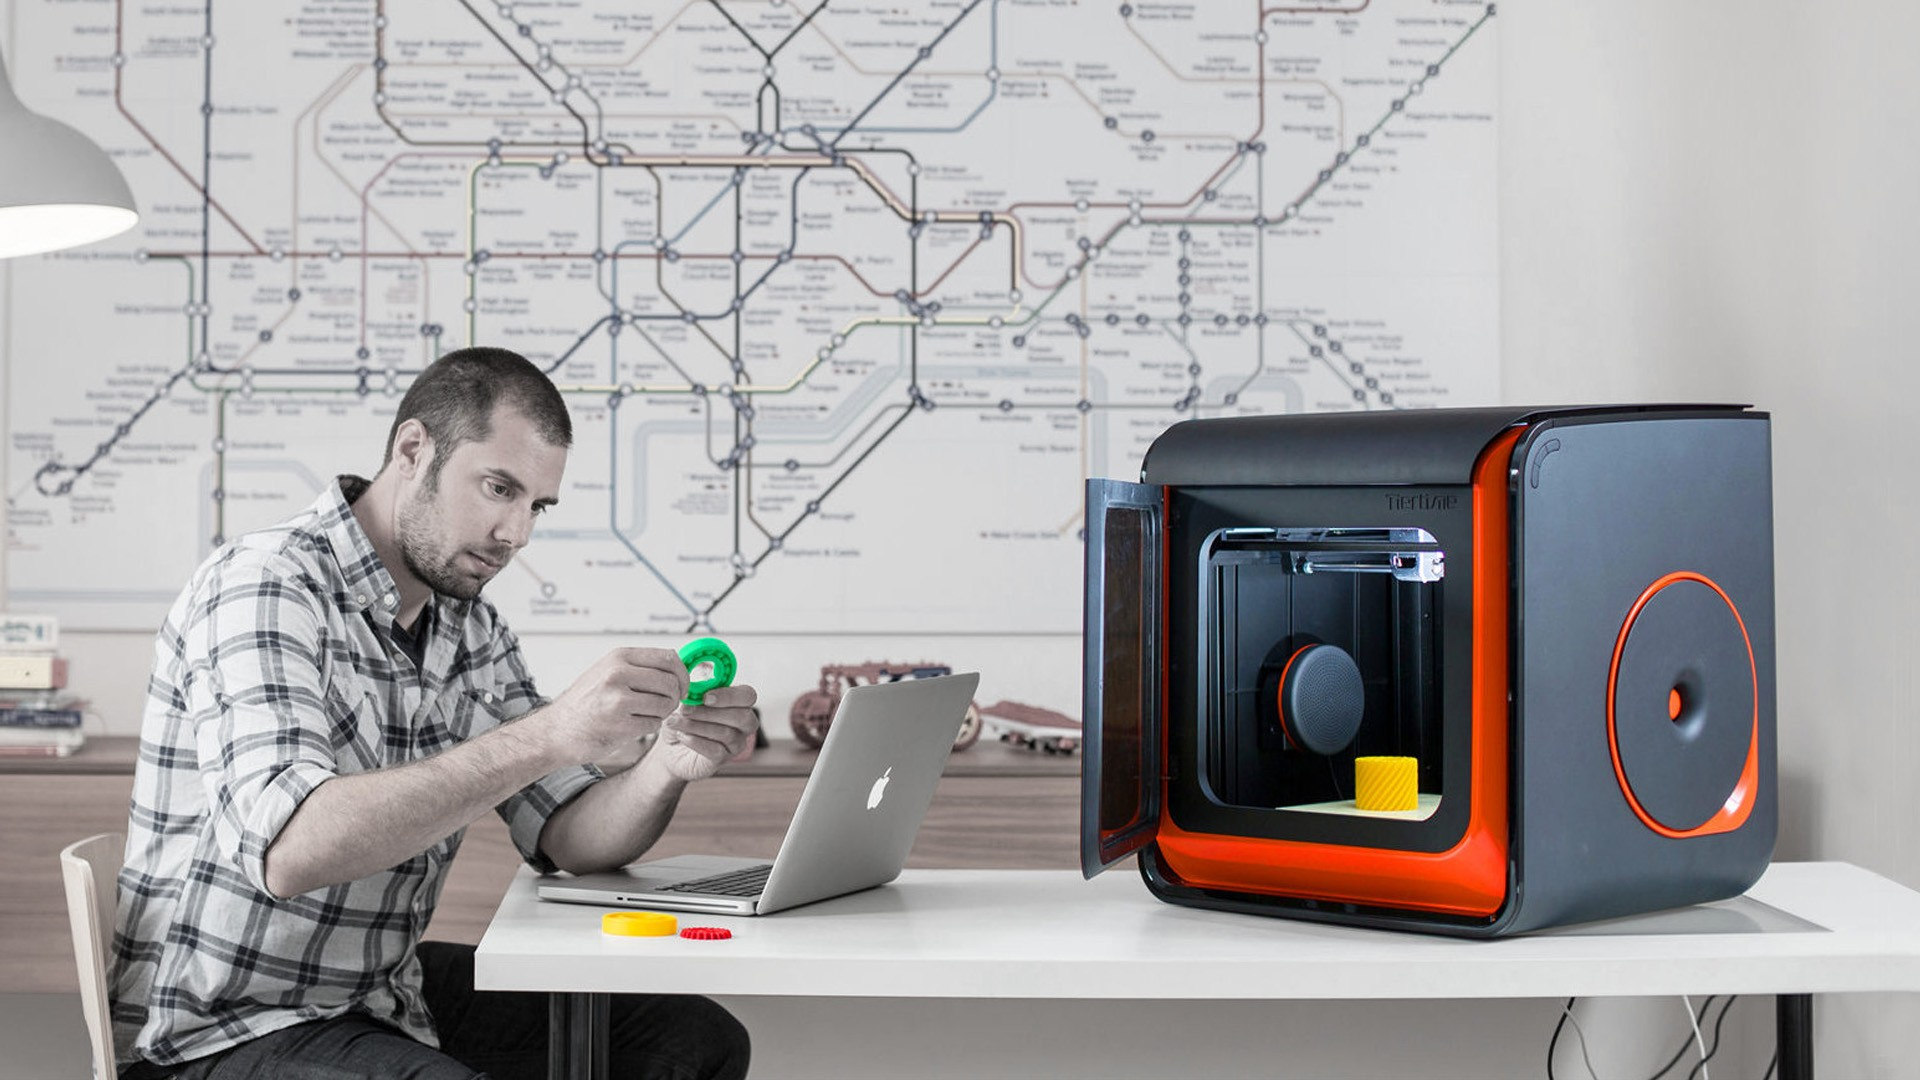 World's biggest 3D printer giveaway for schools – have you applied?